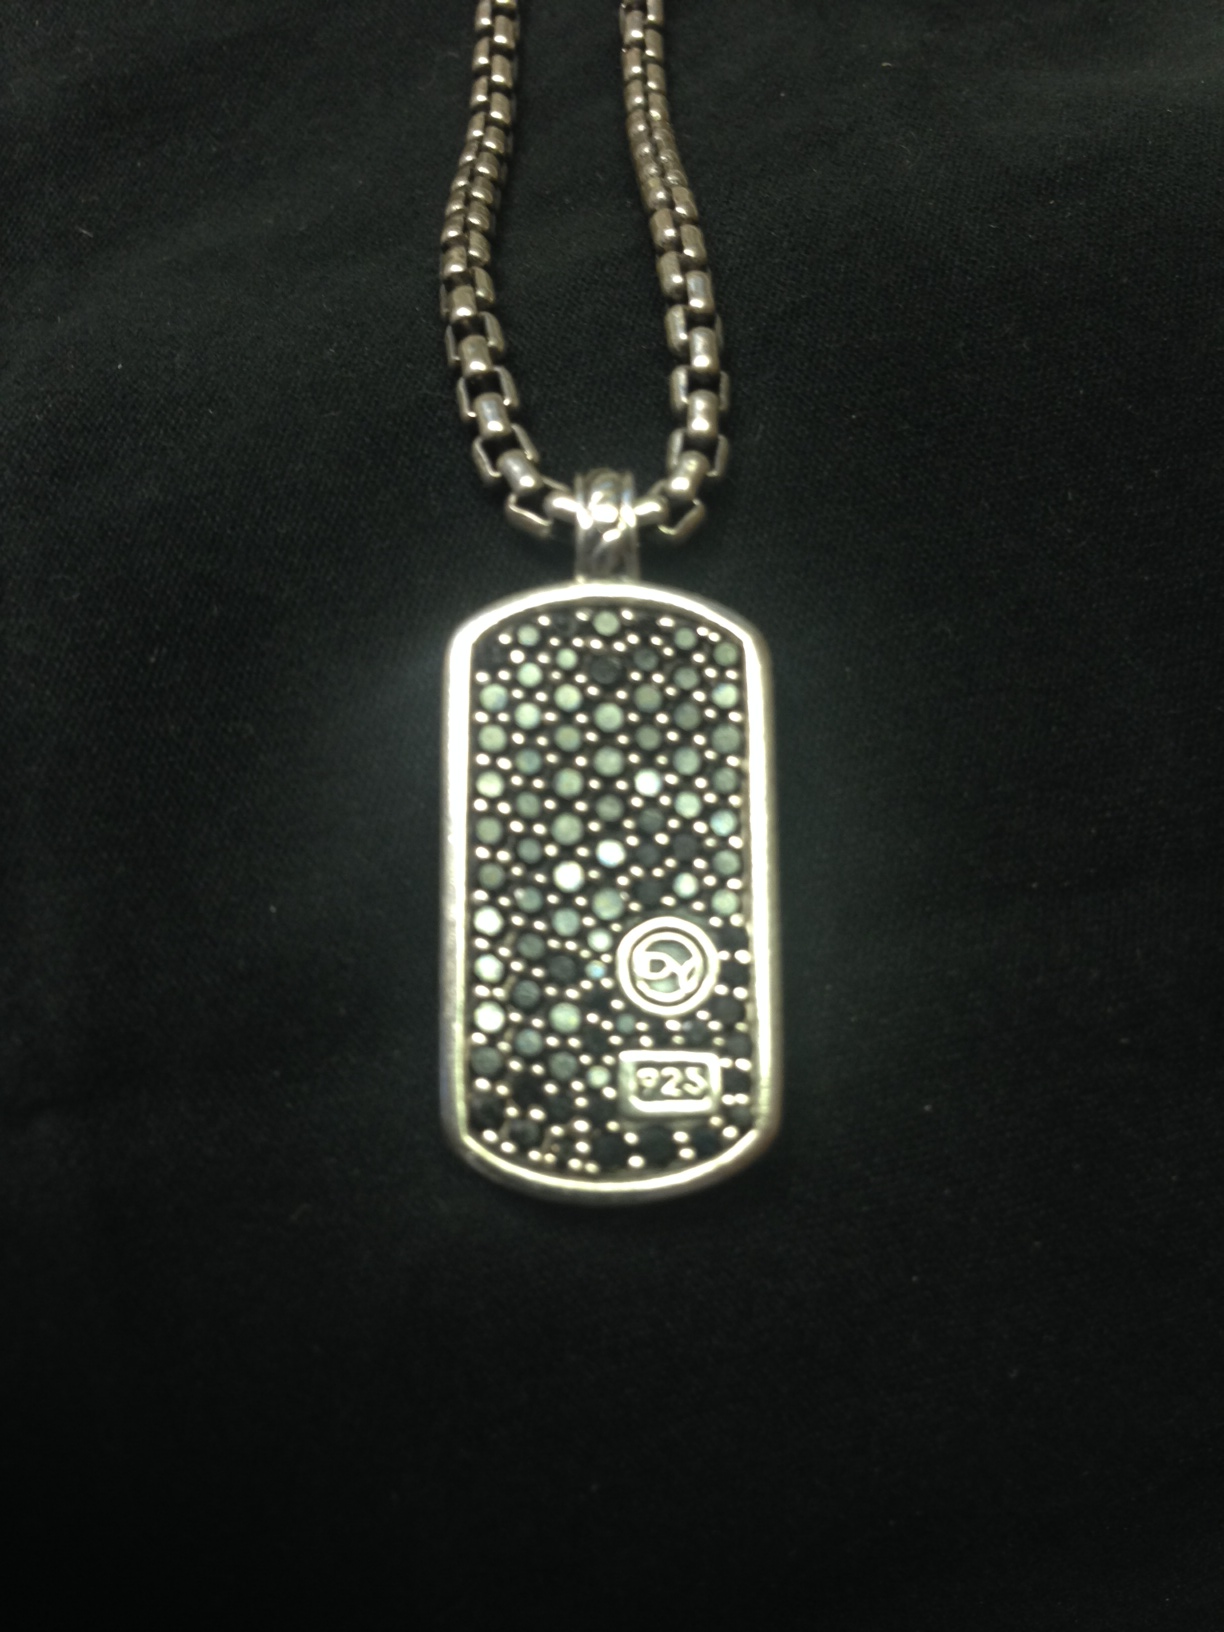 Fake David Yurman Dog tag? Please help me authenti... - The eBay ...